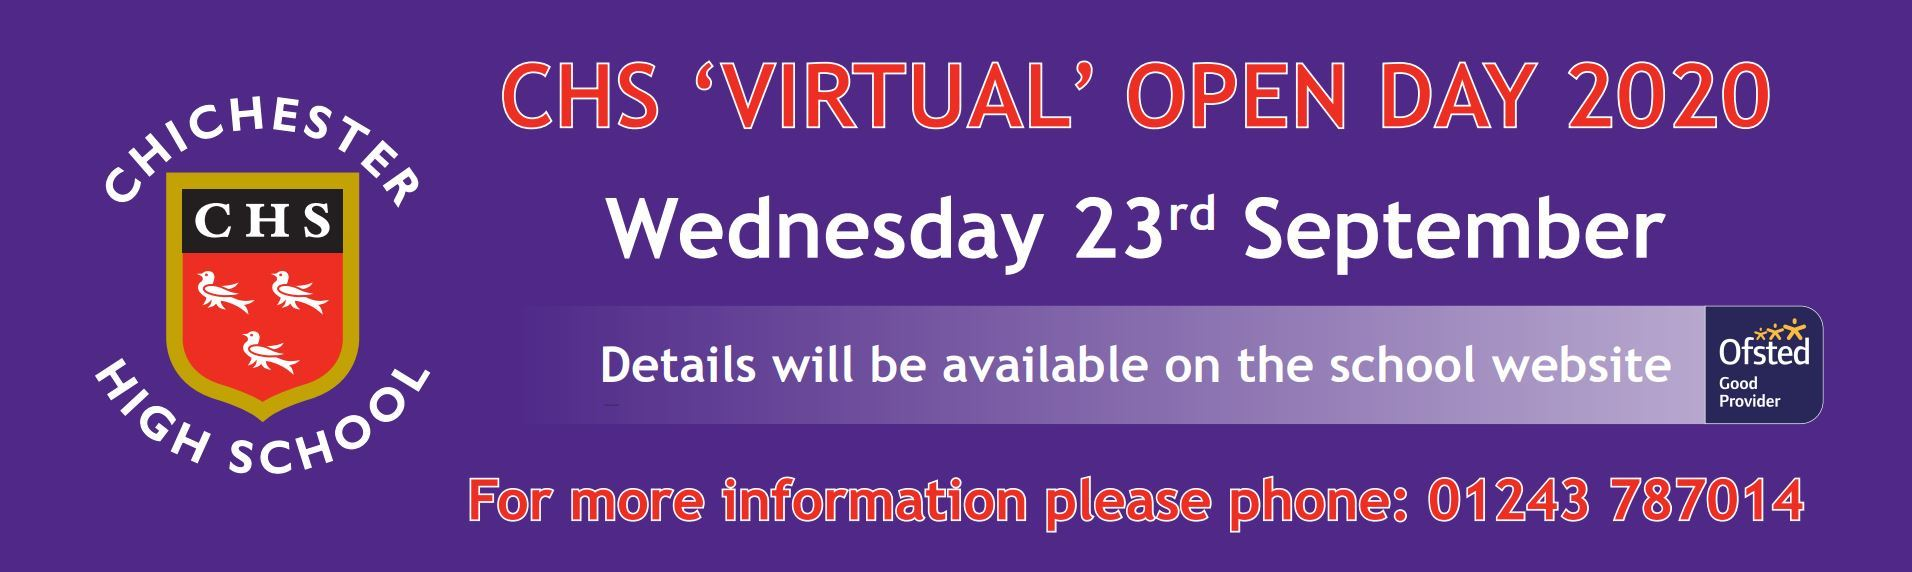 Open day banner 2020